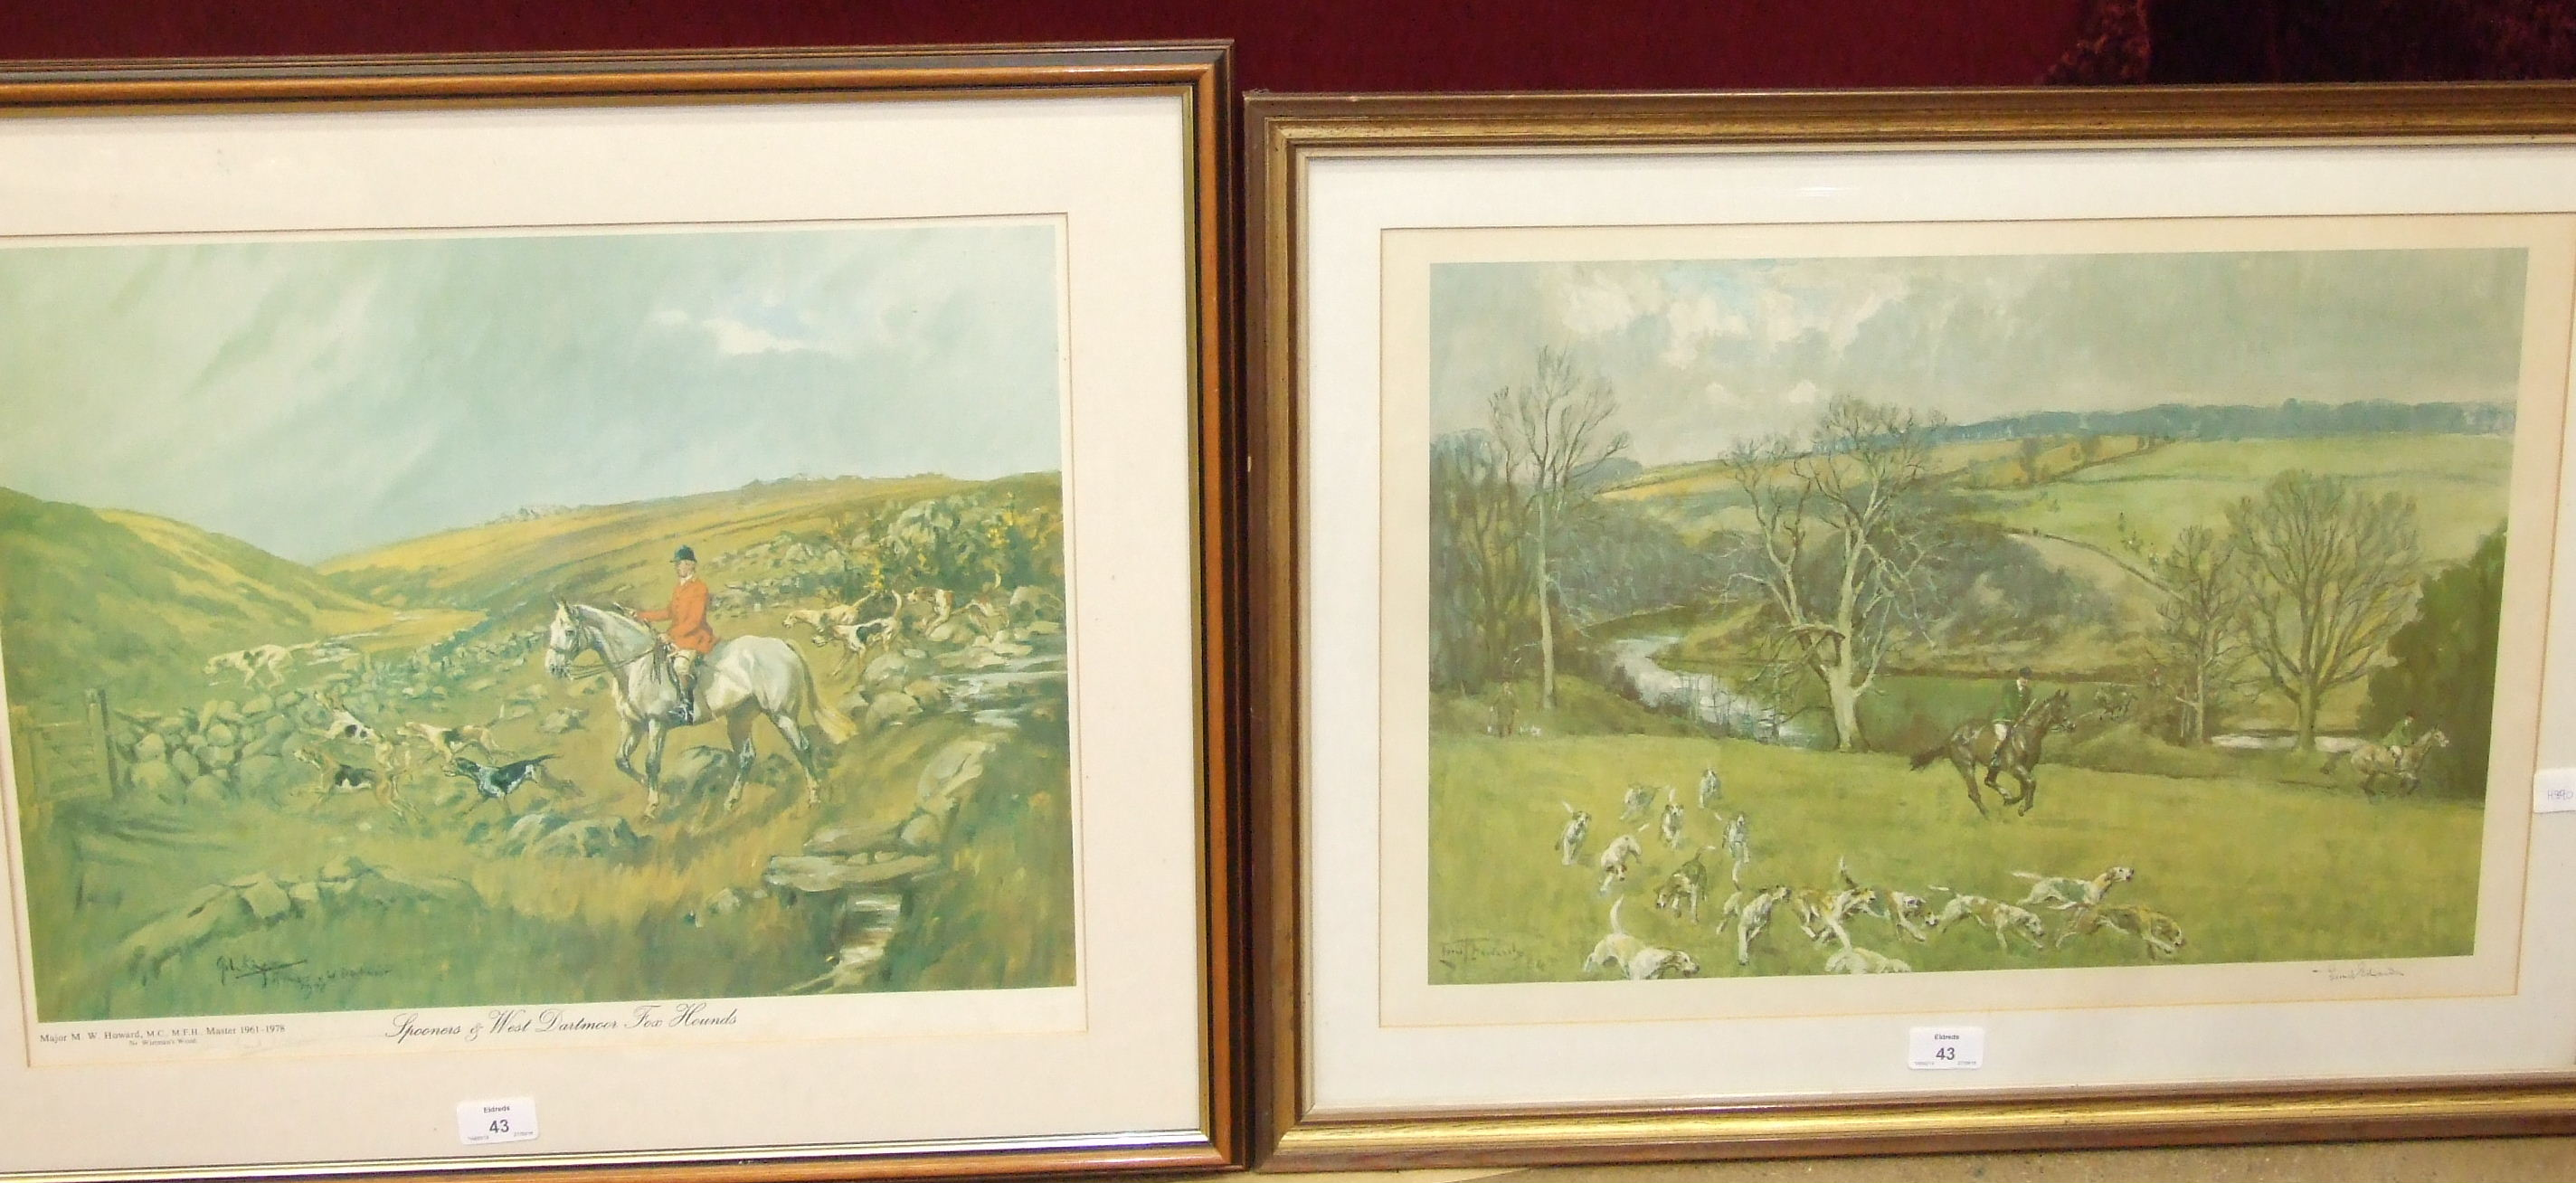 Lot 43 - After Lionel Edwards, 'The Rockwood 1945', a hunting print signed in pencil within margin, 27.5 x